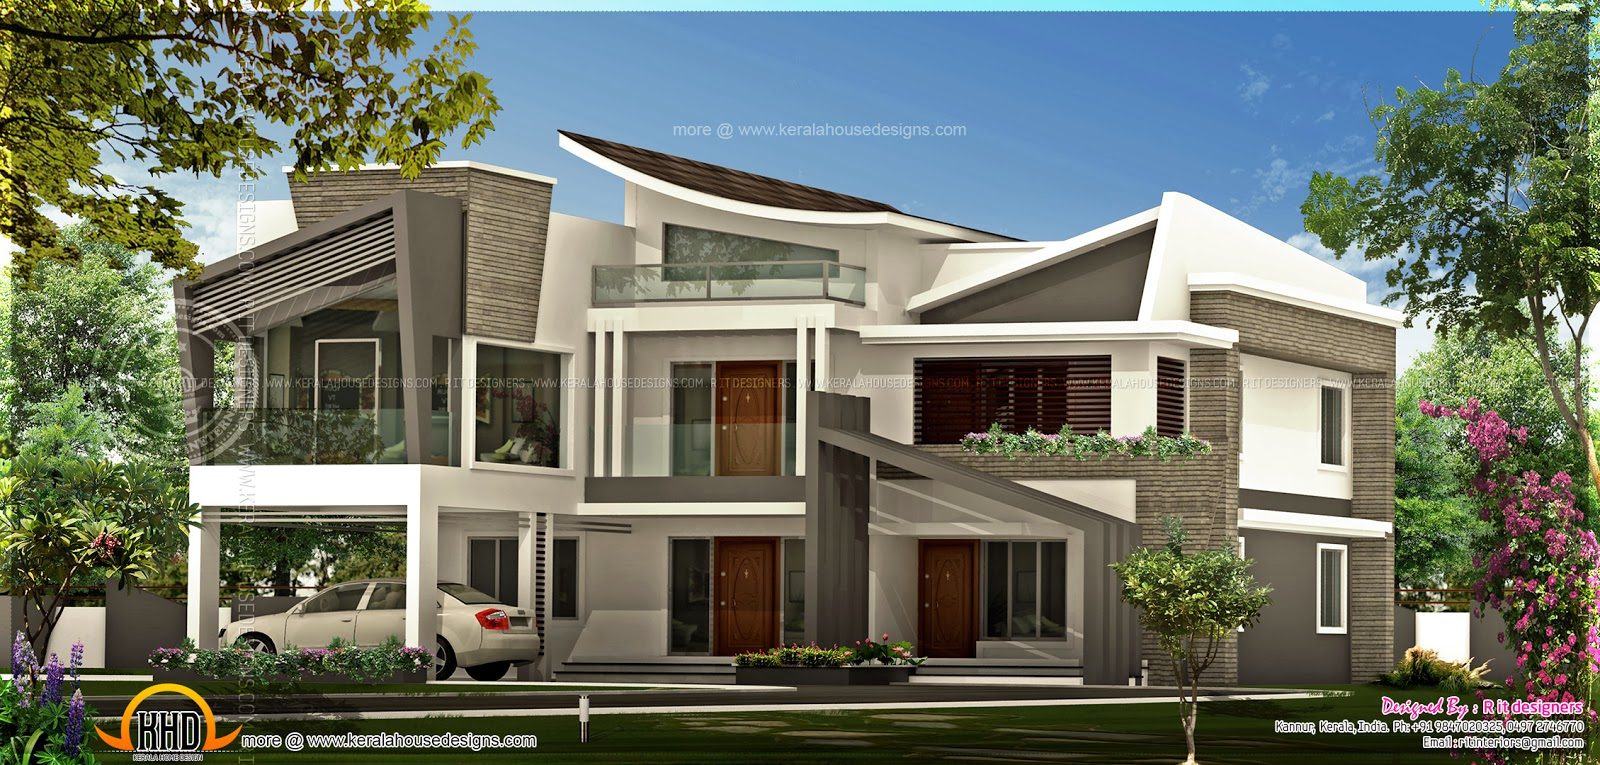 Unique contemporary luxury house kerala home design and for Cool house designs